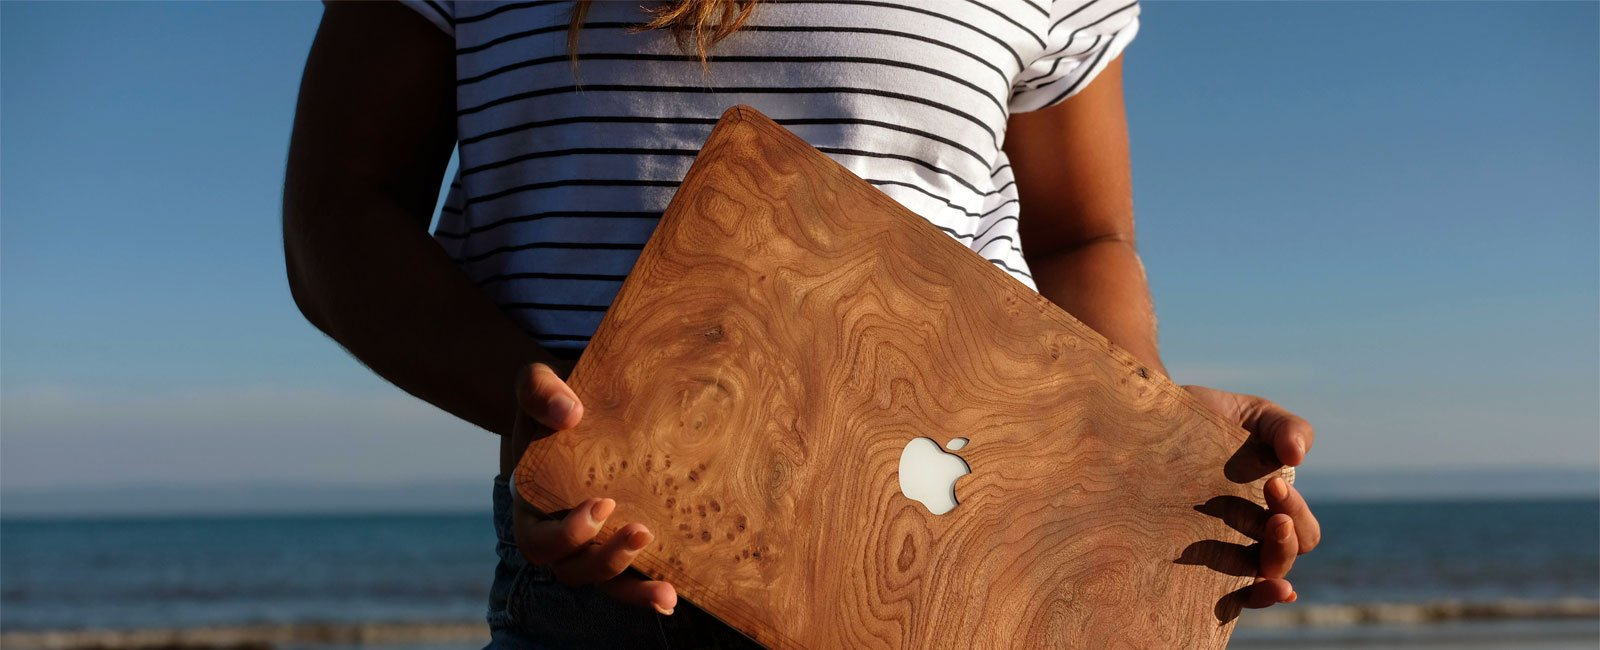 #WoodBack Collection - made by hand, designed by nature